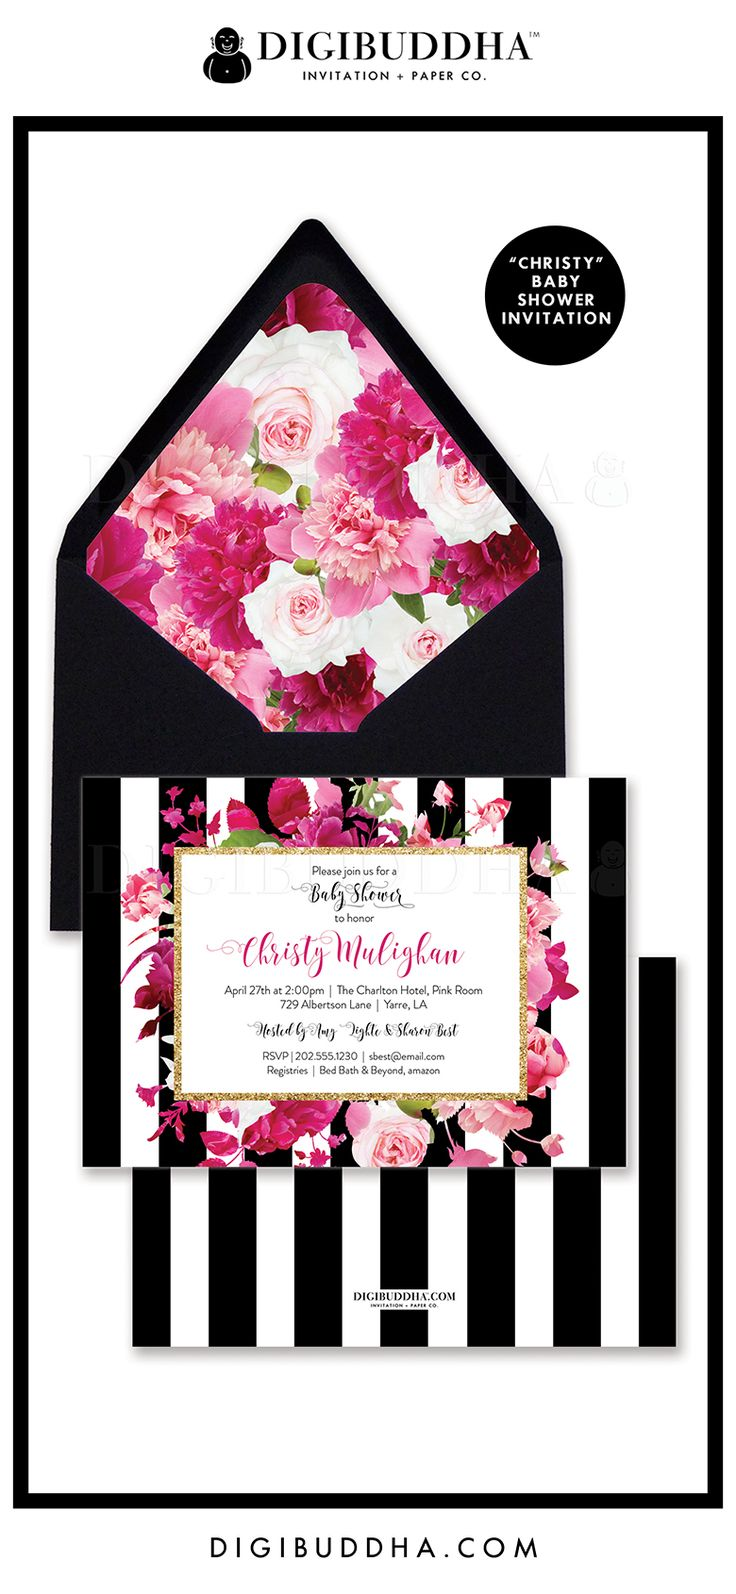 "Baby Shower Invitation, ""Christy"" style with a gorgeous classic black and white stripe pattern overlaid with florals in lush shades of pink. Modern calligraphy, black envelope & floral envelope liner also available, at digibuddha.com"